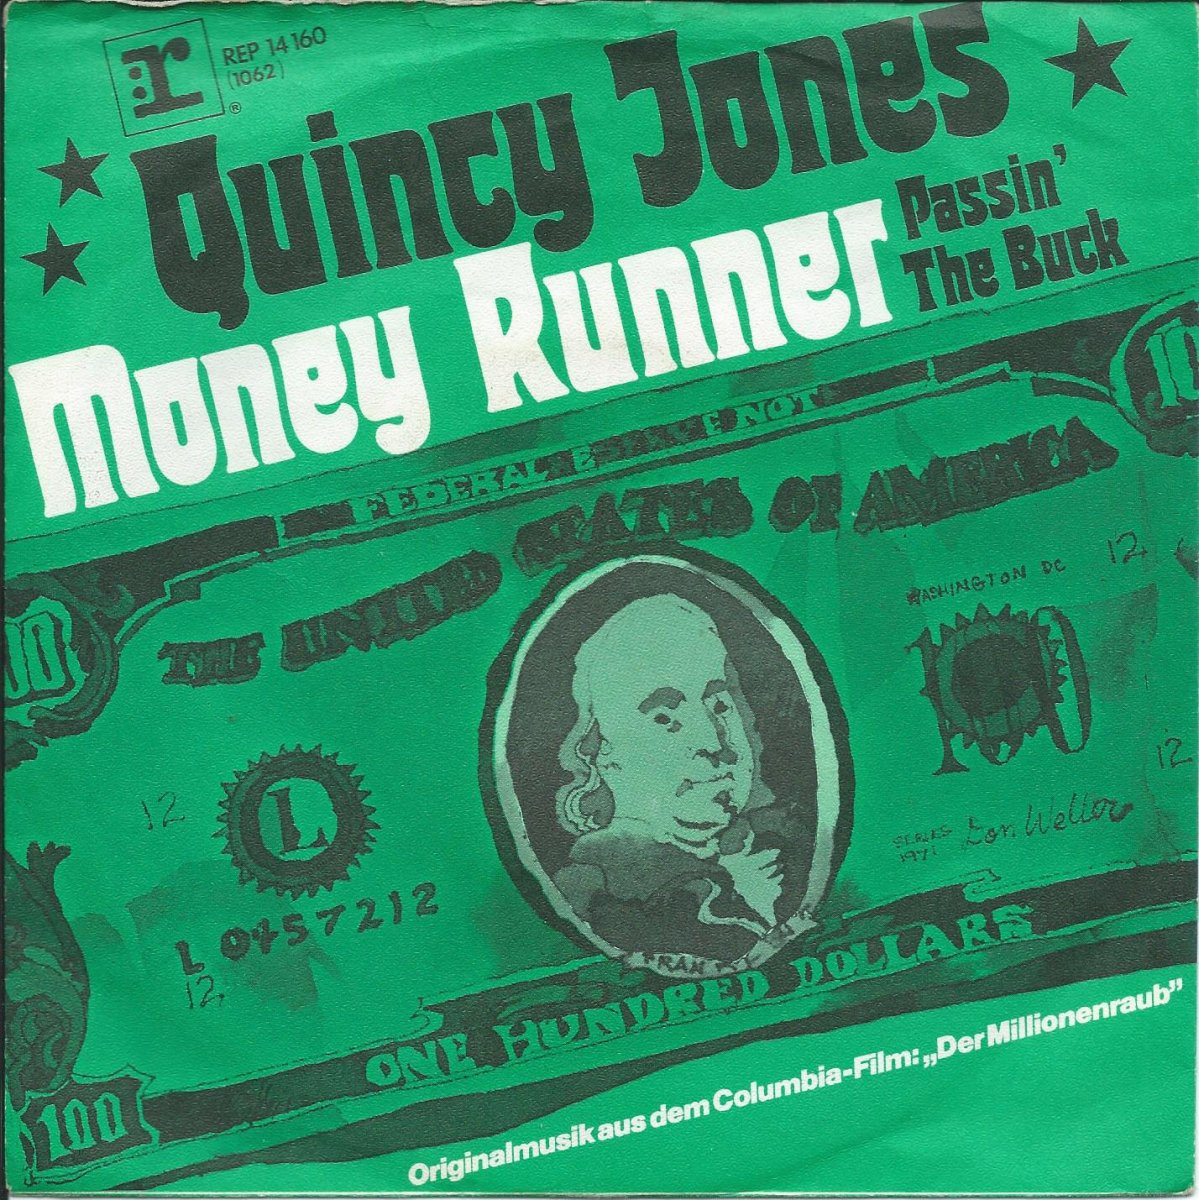 QUINCY JONES / MONEY RUNNER / PASSIN' THE BUCK (7